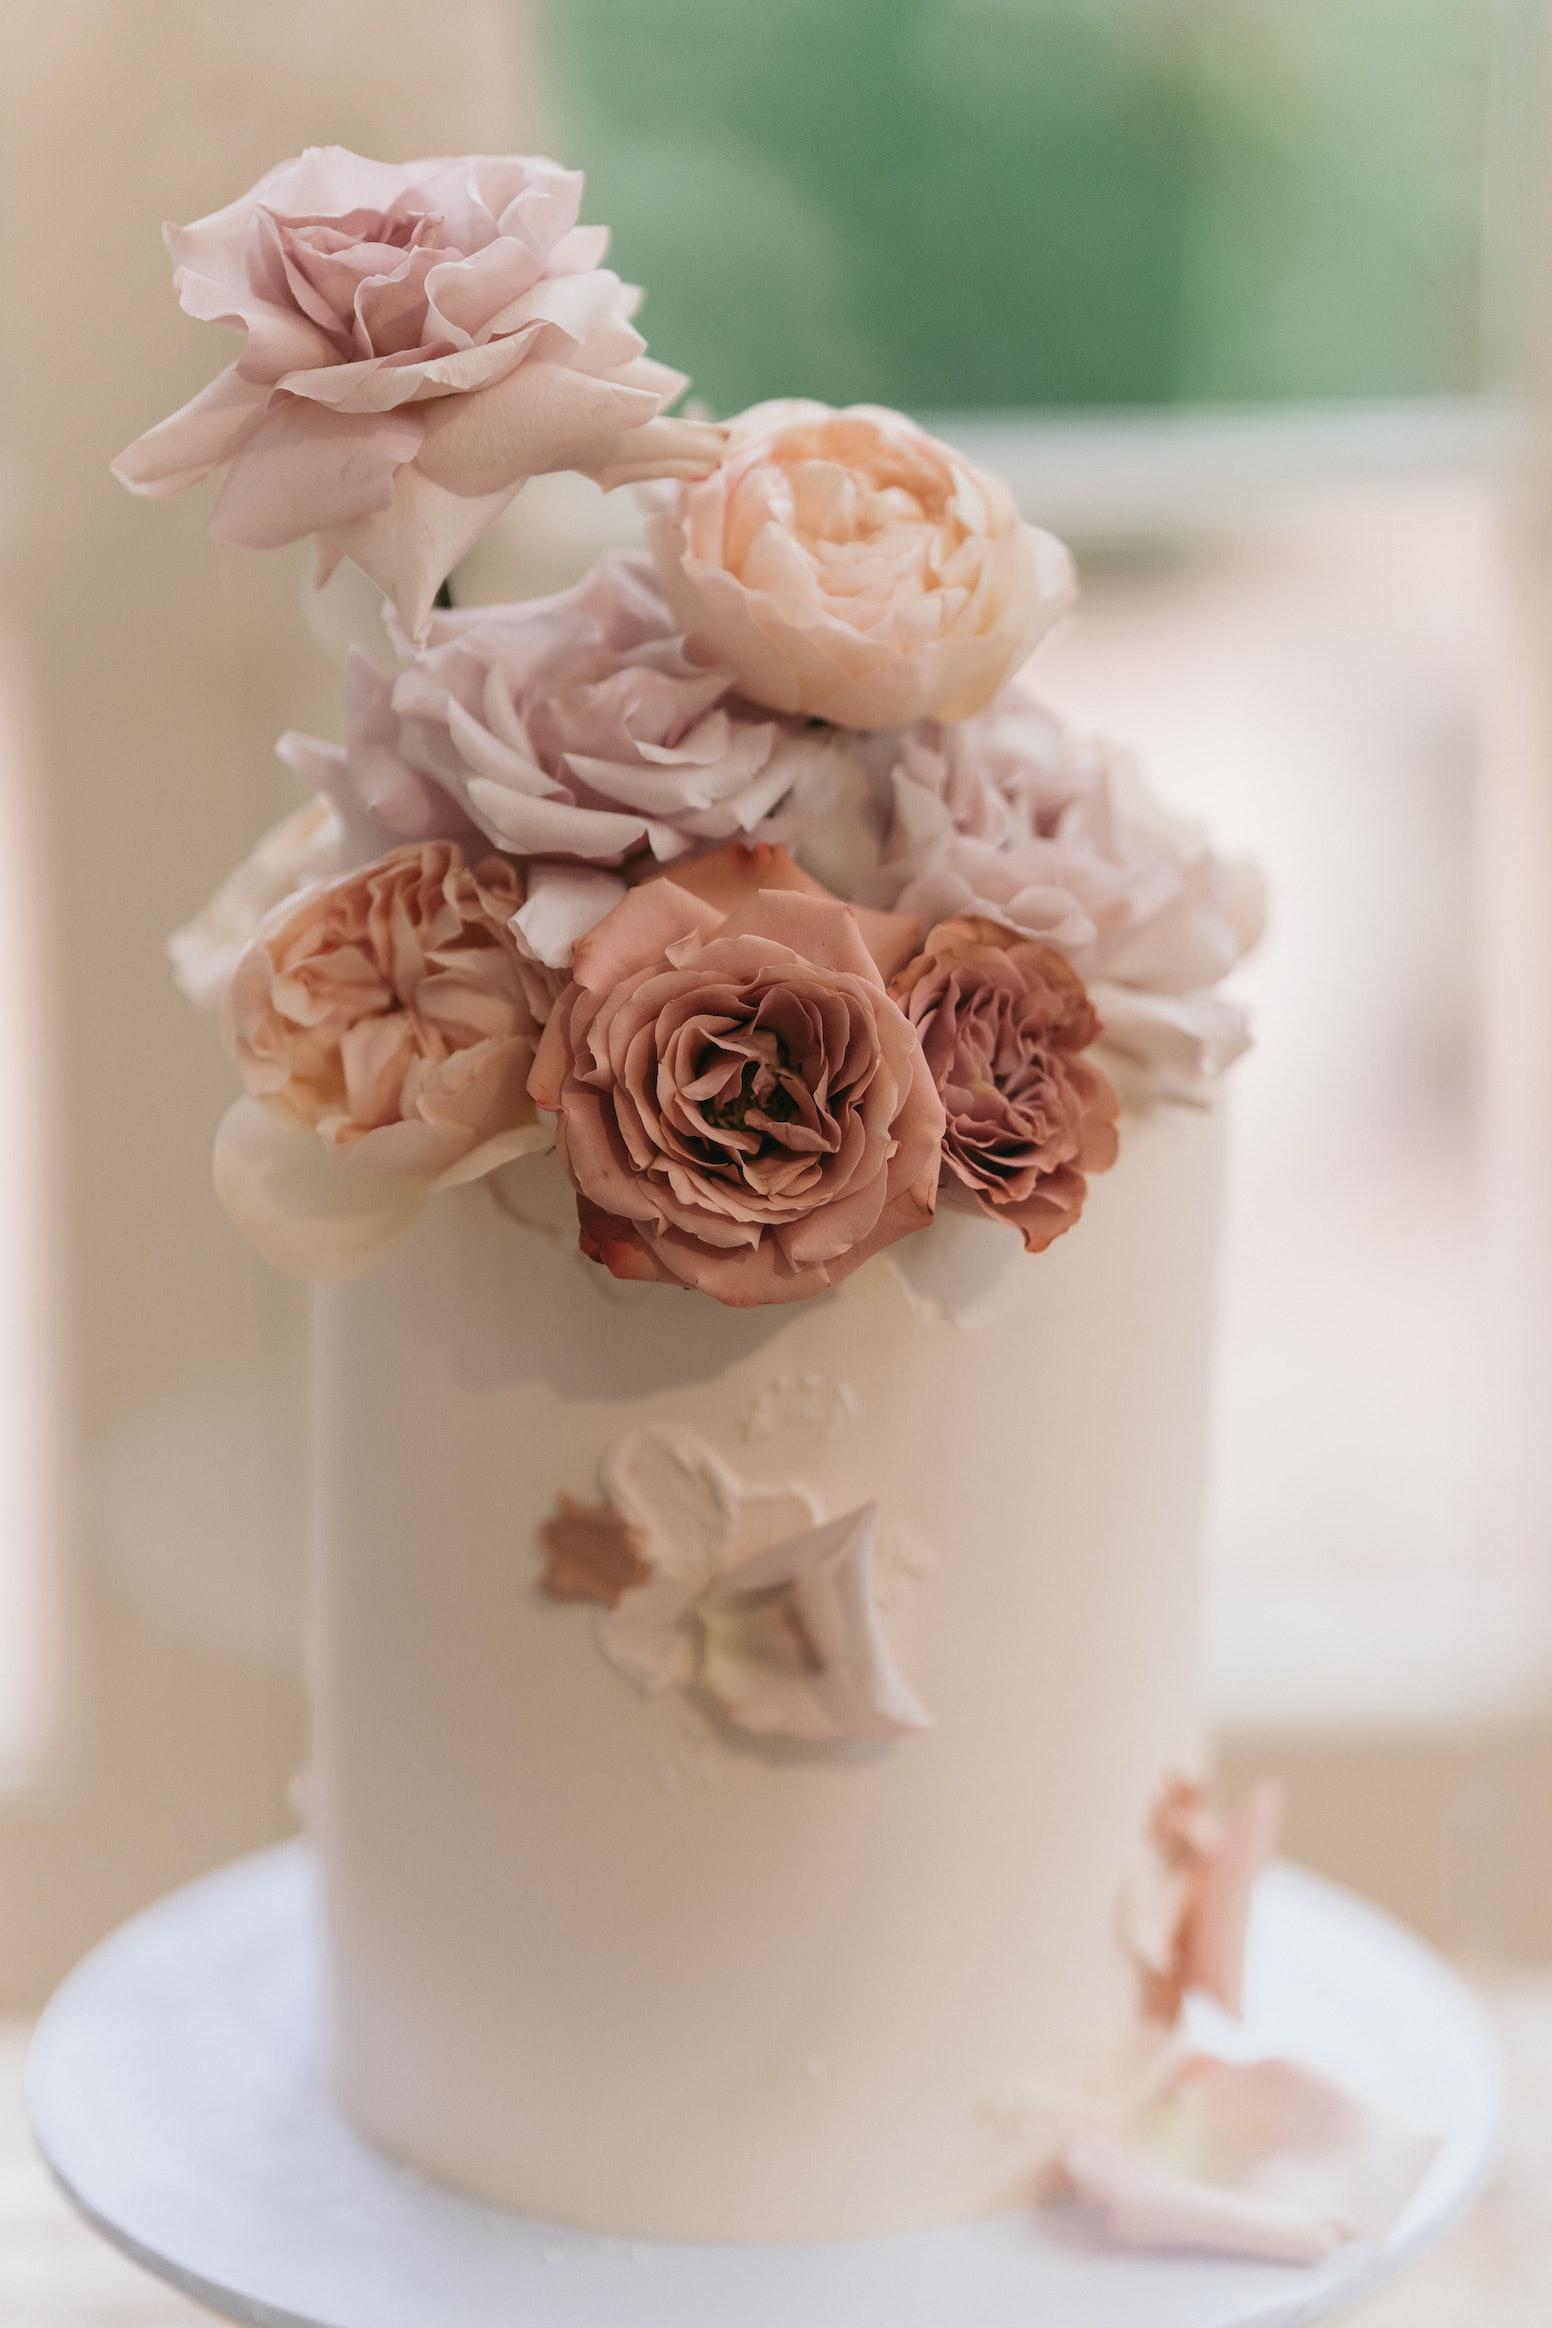 wedding cake with fresh flowers on top